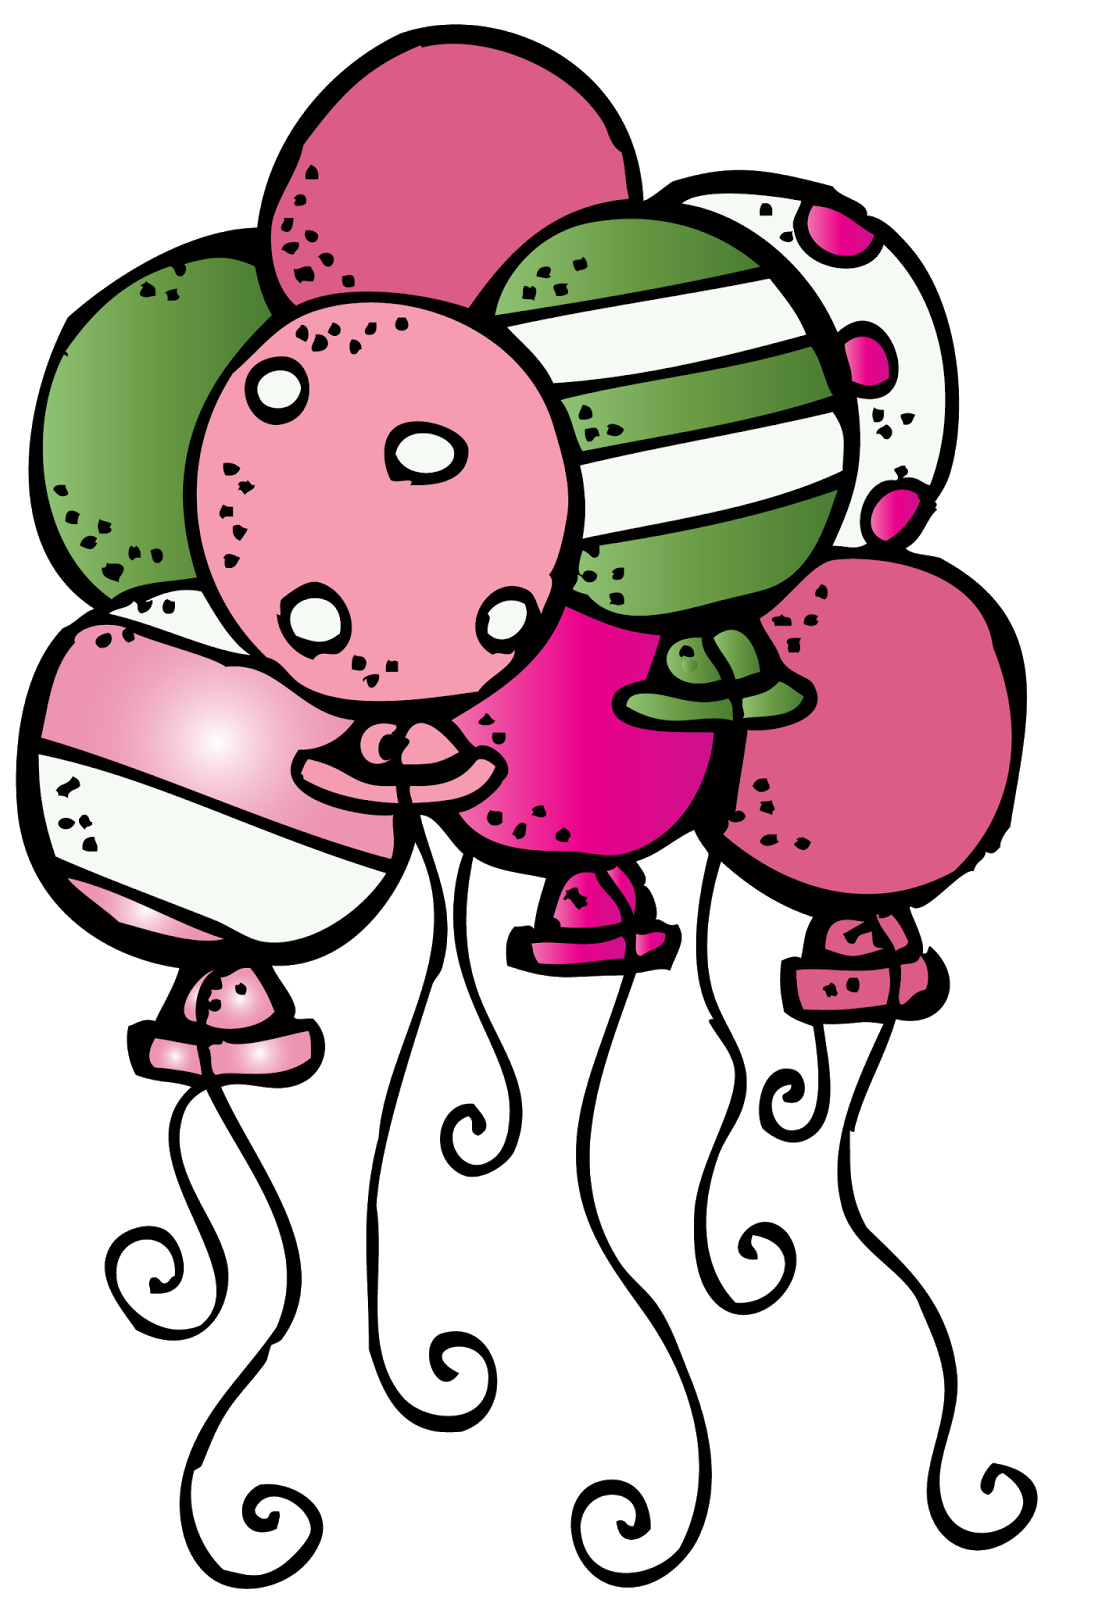 Groovy cat clipart melonheadz clip library November 2013 - Teaching Ever After clip library